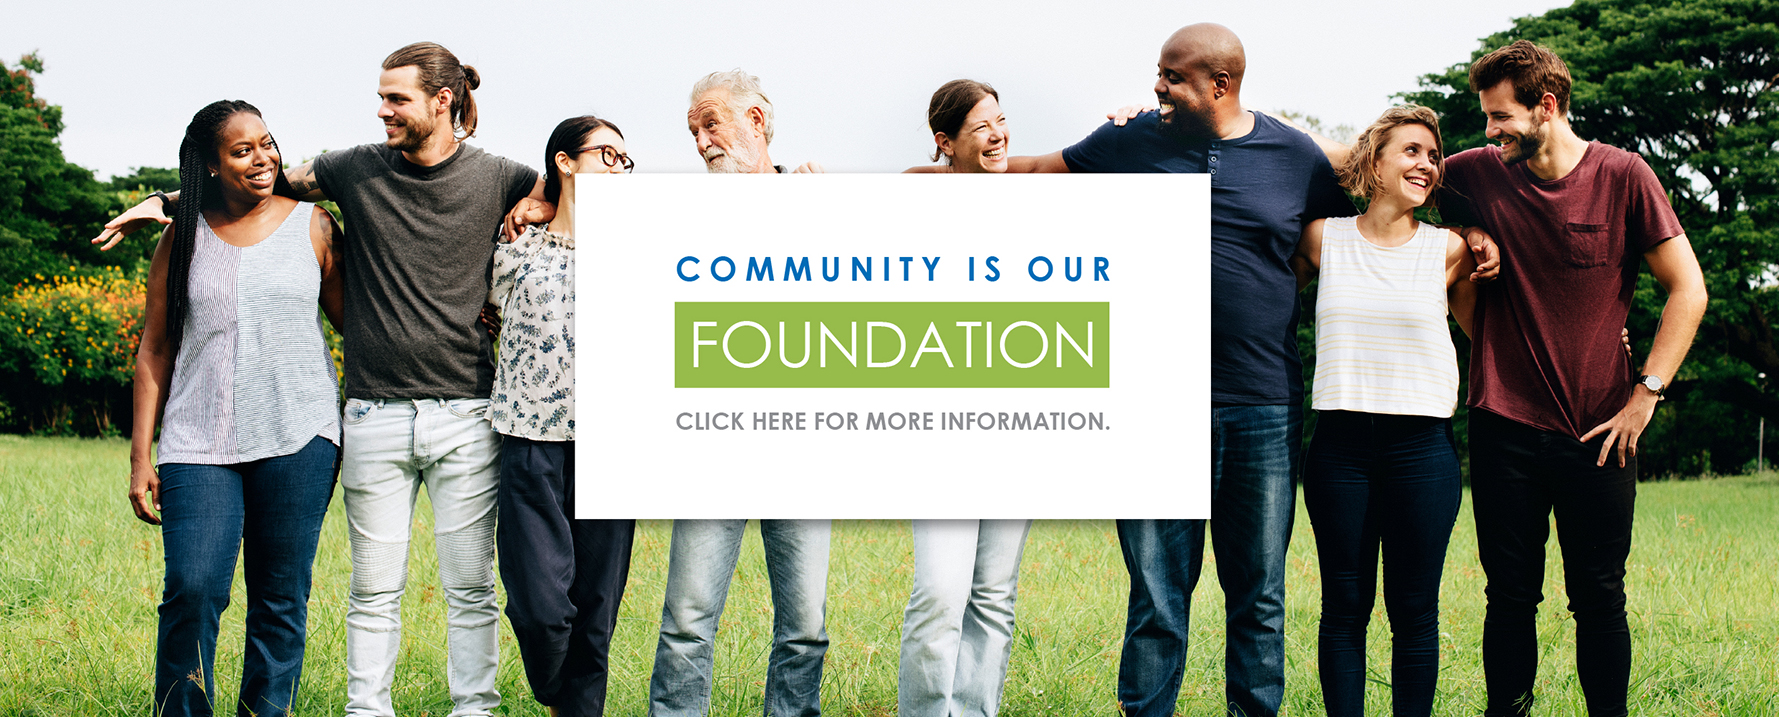 Community is Our Foundation